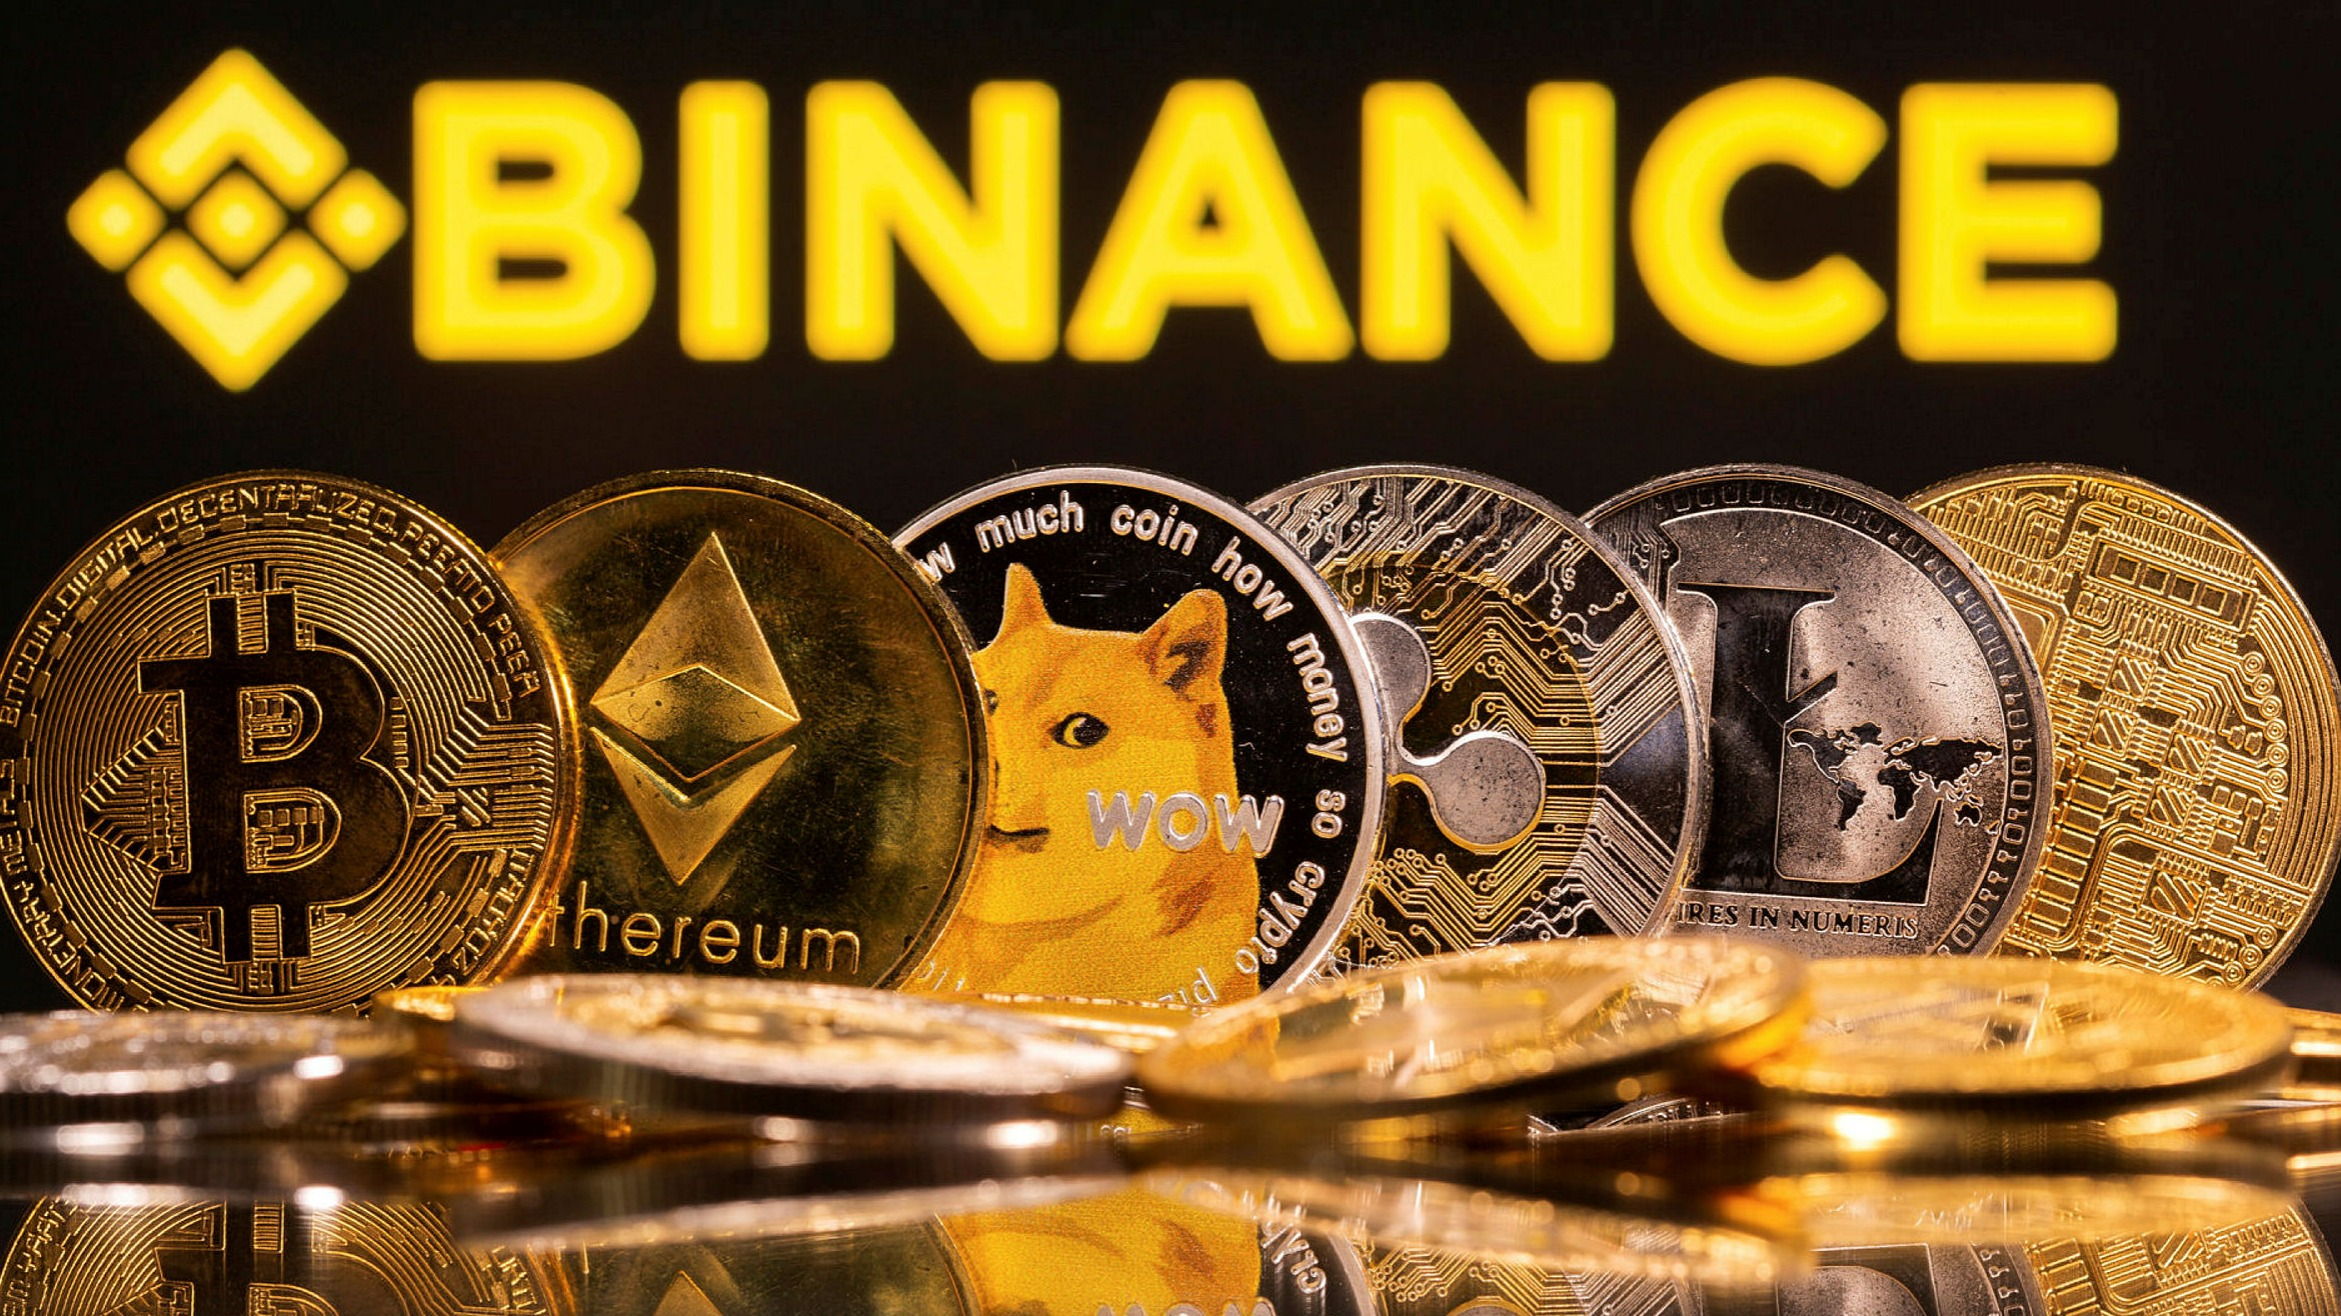 The Binance stand-off shows bitcoin's limits   Financial Times